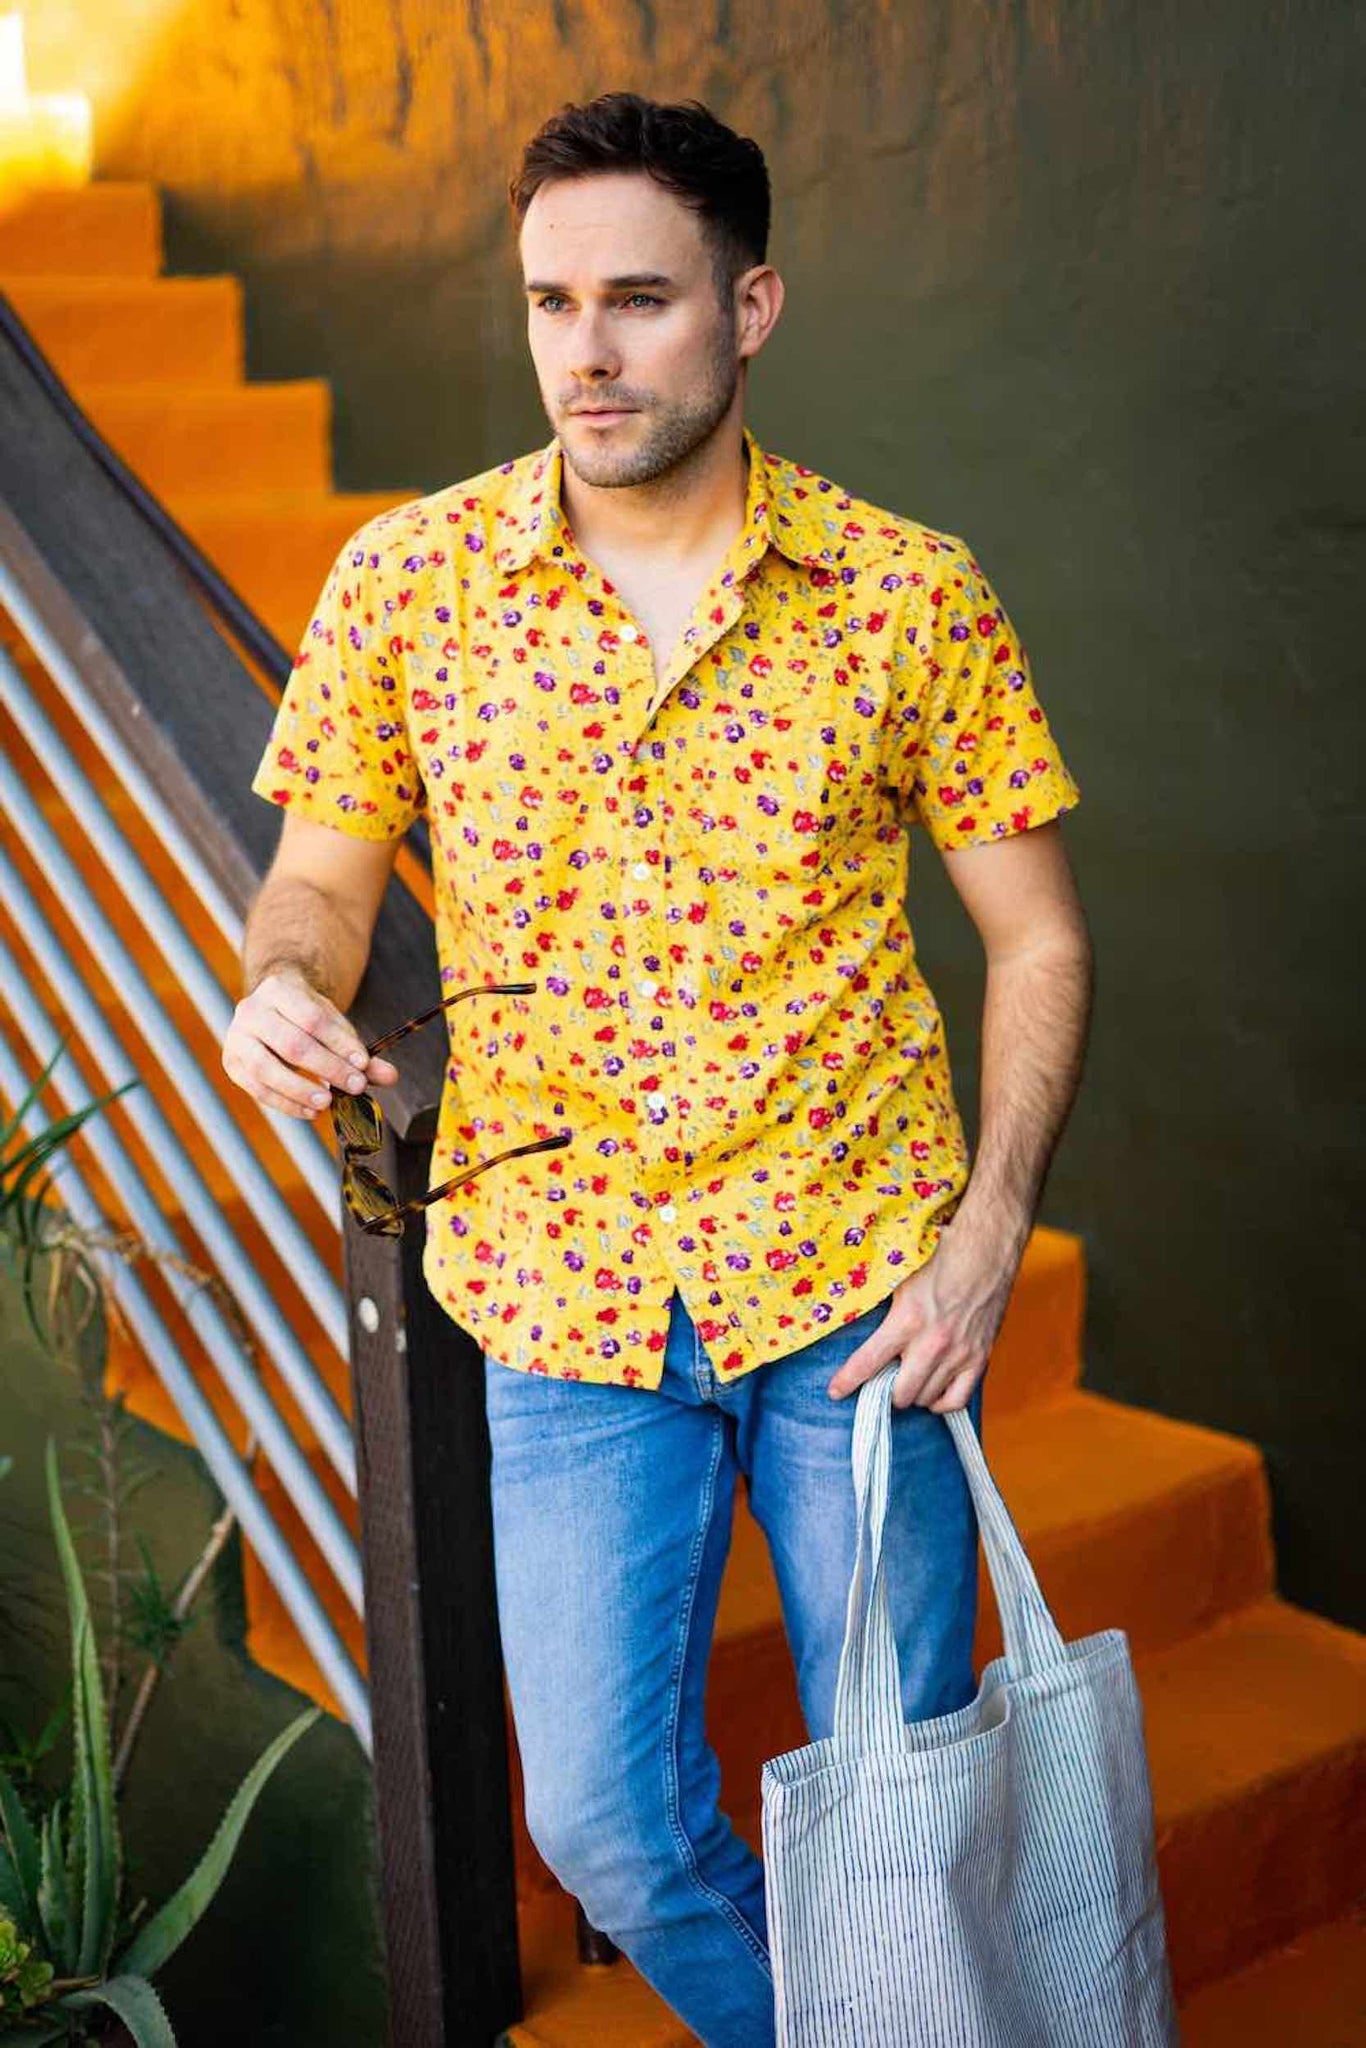 Hand-Printed 'The Folk' Short Sleeve Shirt in Yellow Floral Print